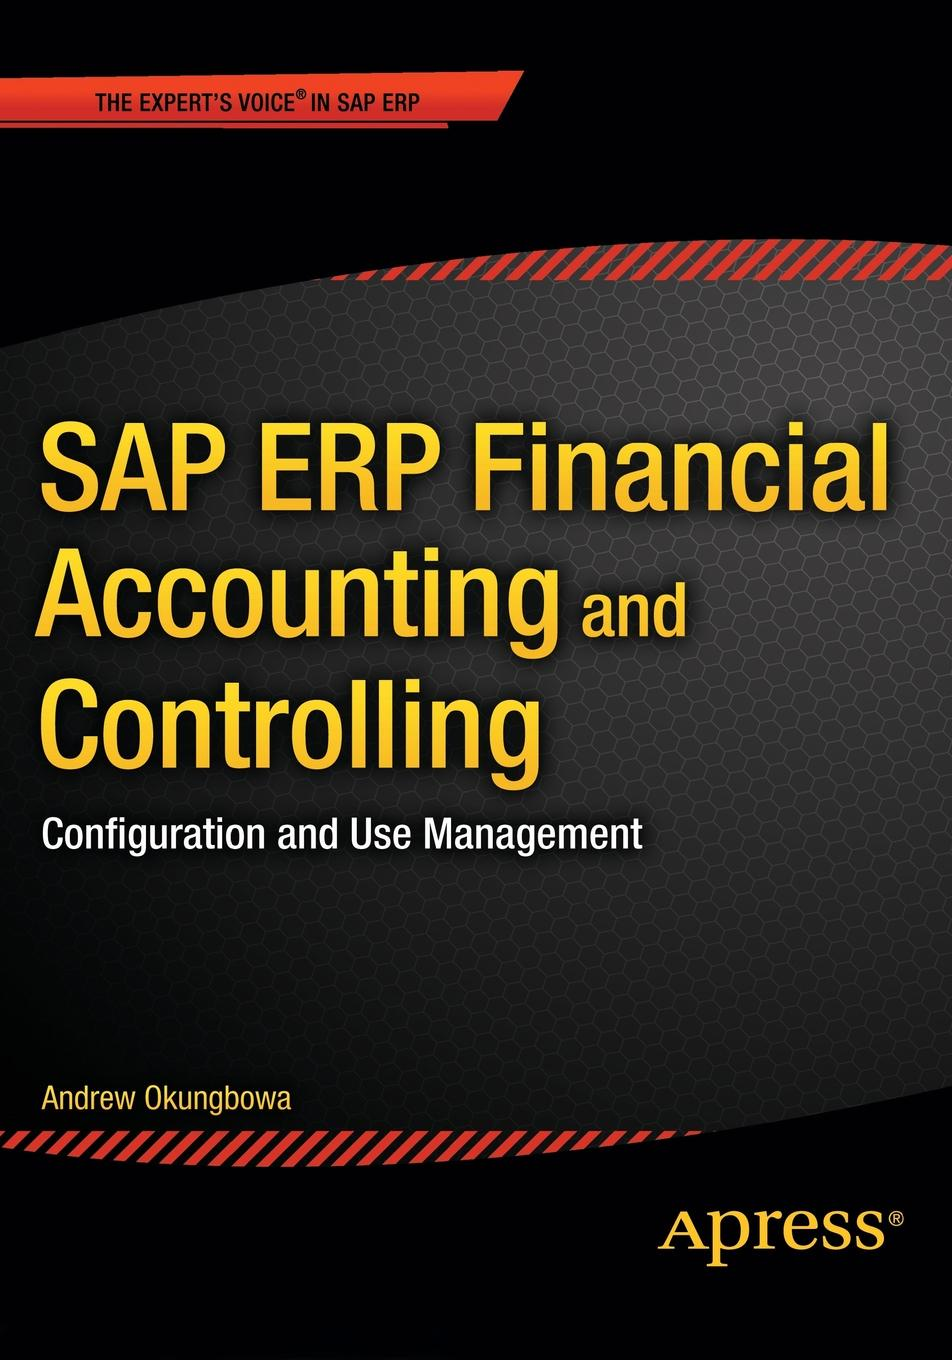 Фото - Andrew Okungbowa SAP ERP Financial Accounting and Controlling. Configuration and Use Management kapil sharma configuring sap erp sales and distribution